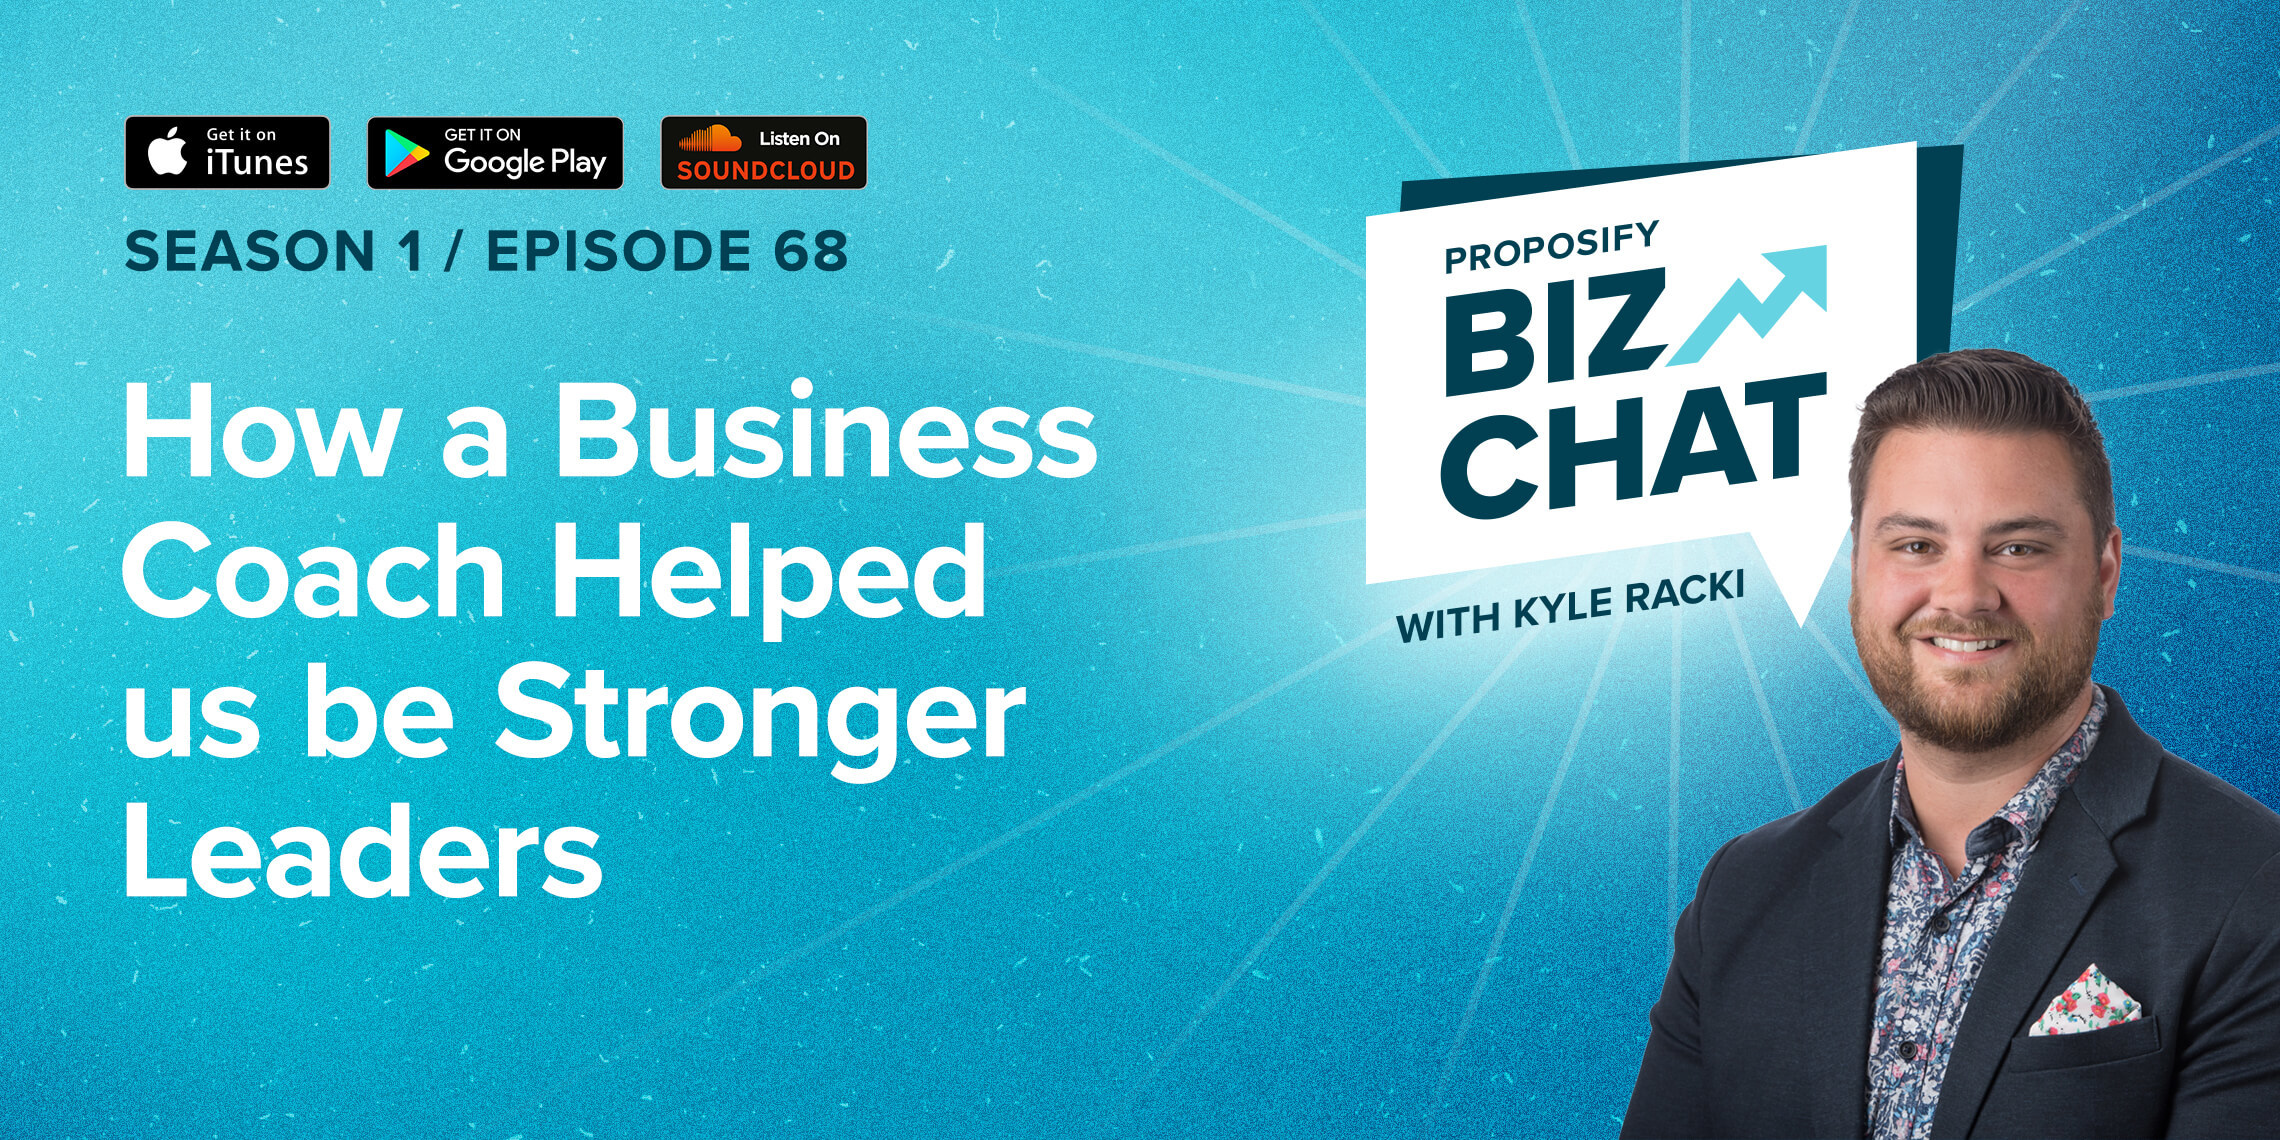 How a Business Coach Helped Us Be Stronger Leaders